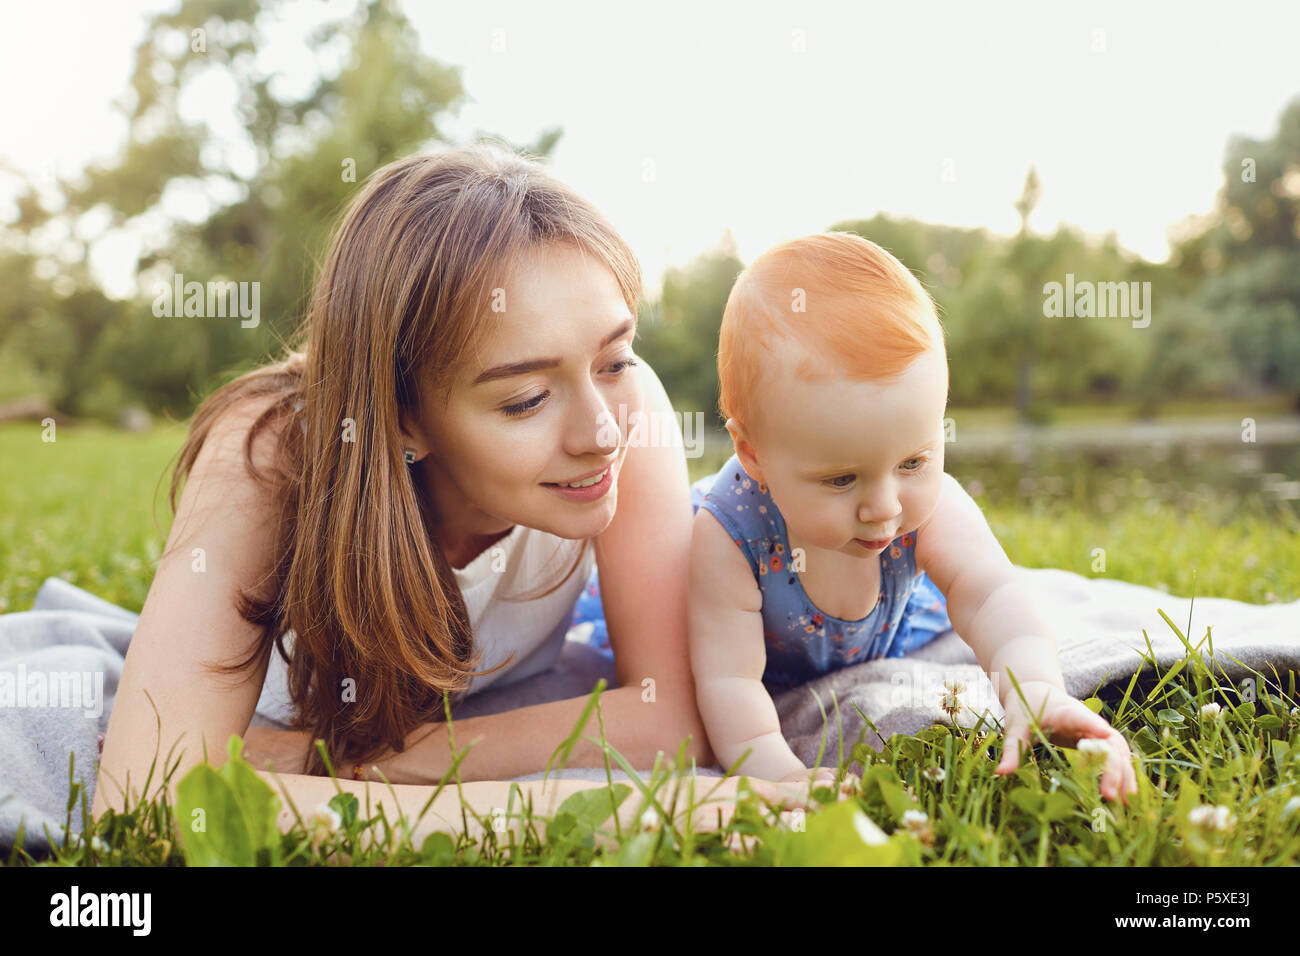 Mother and baby playing on grass in park. - Stock Image